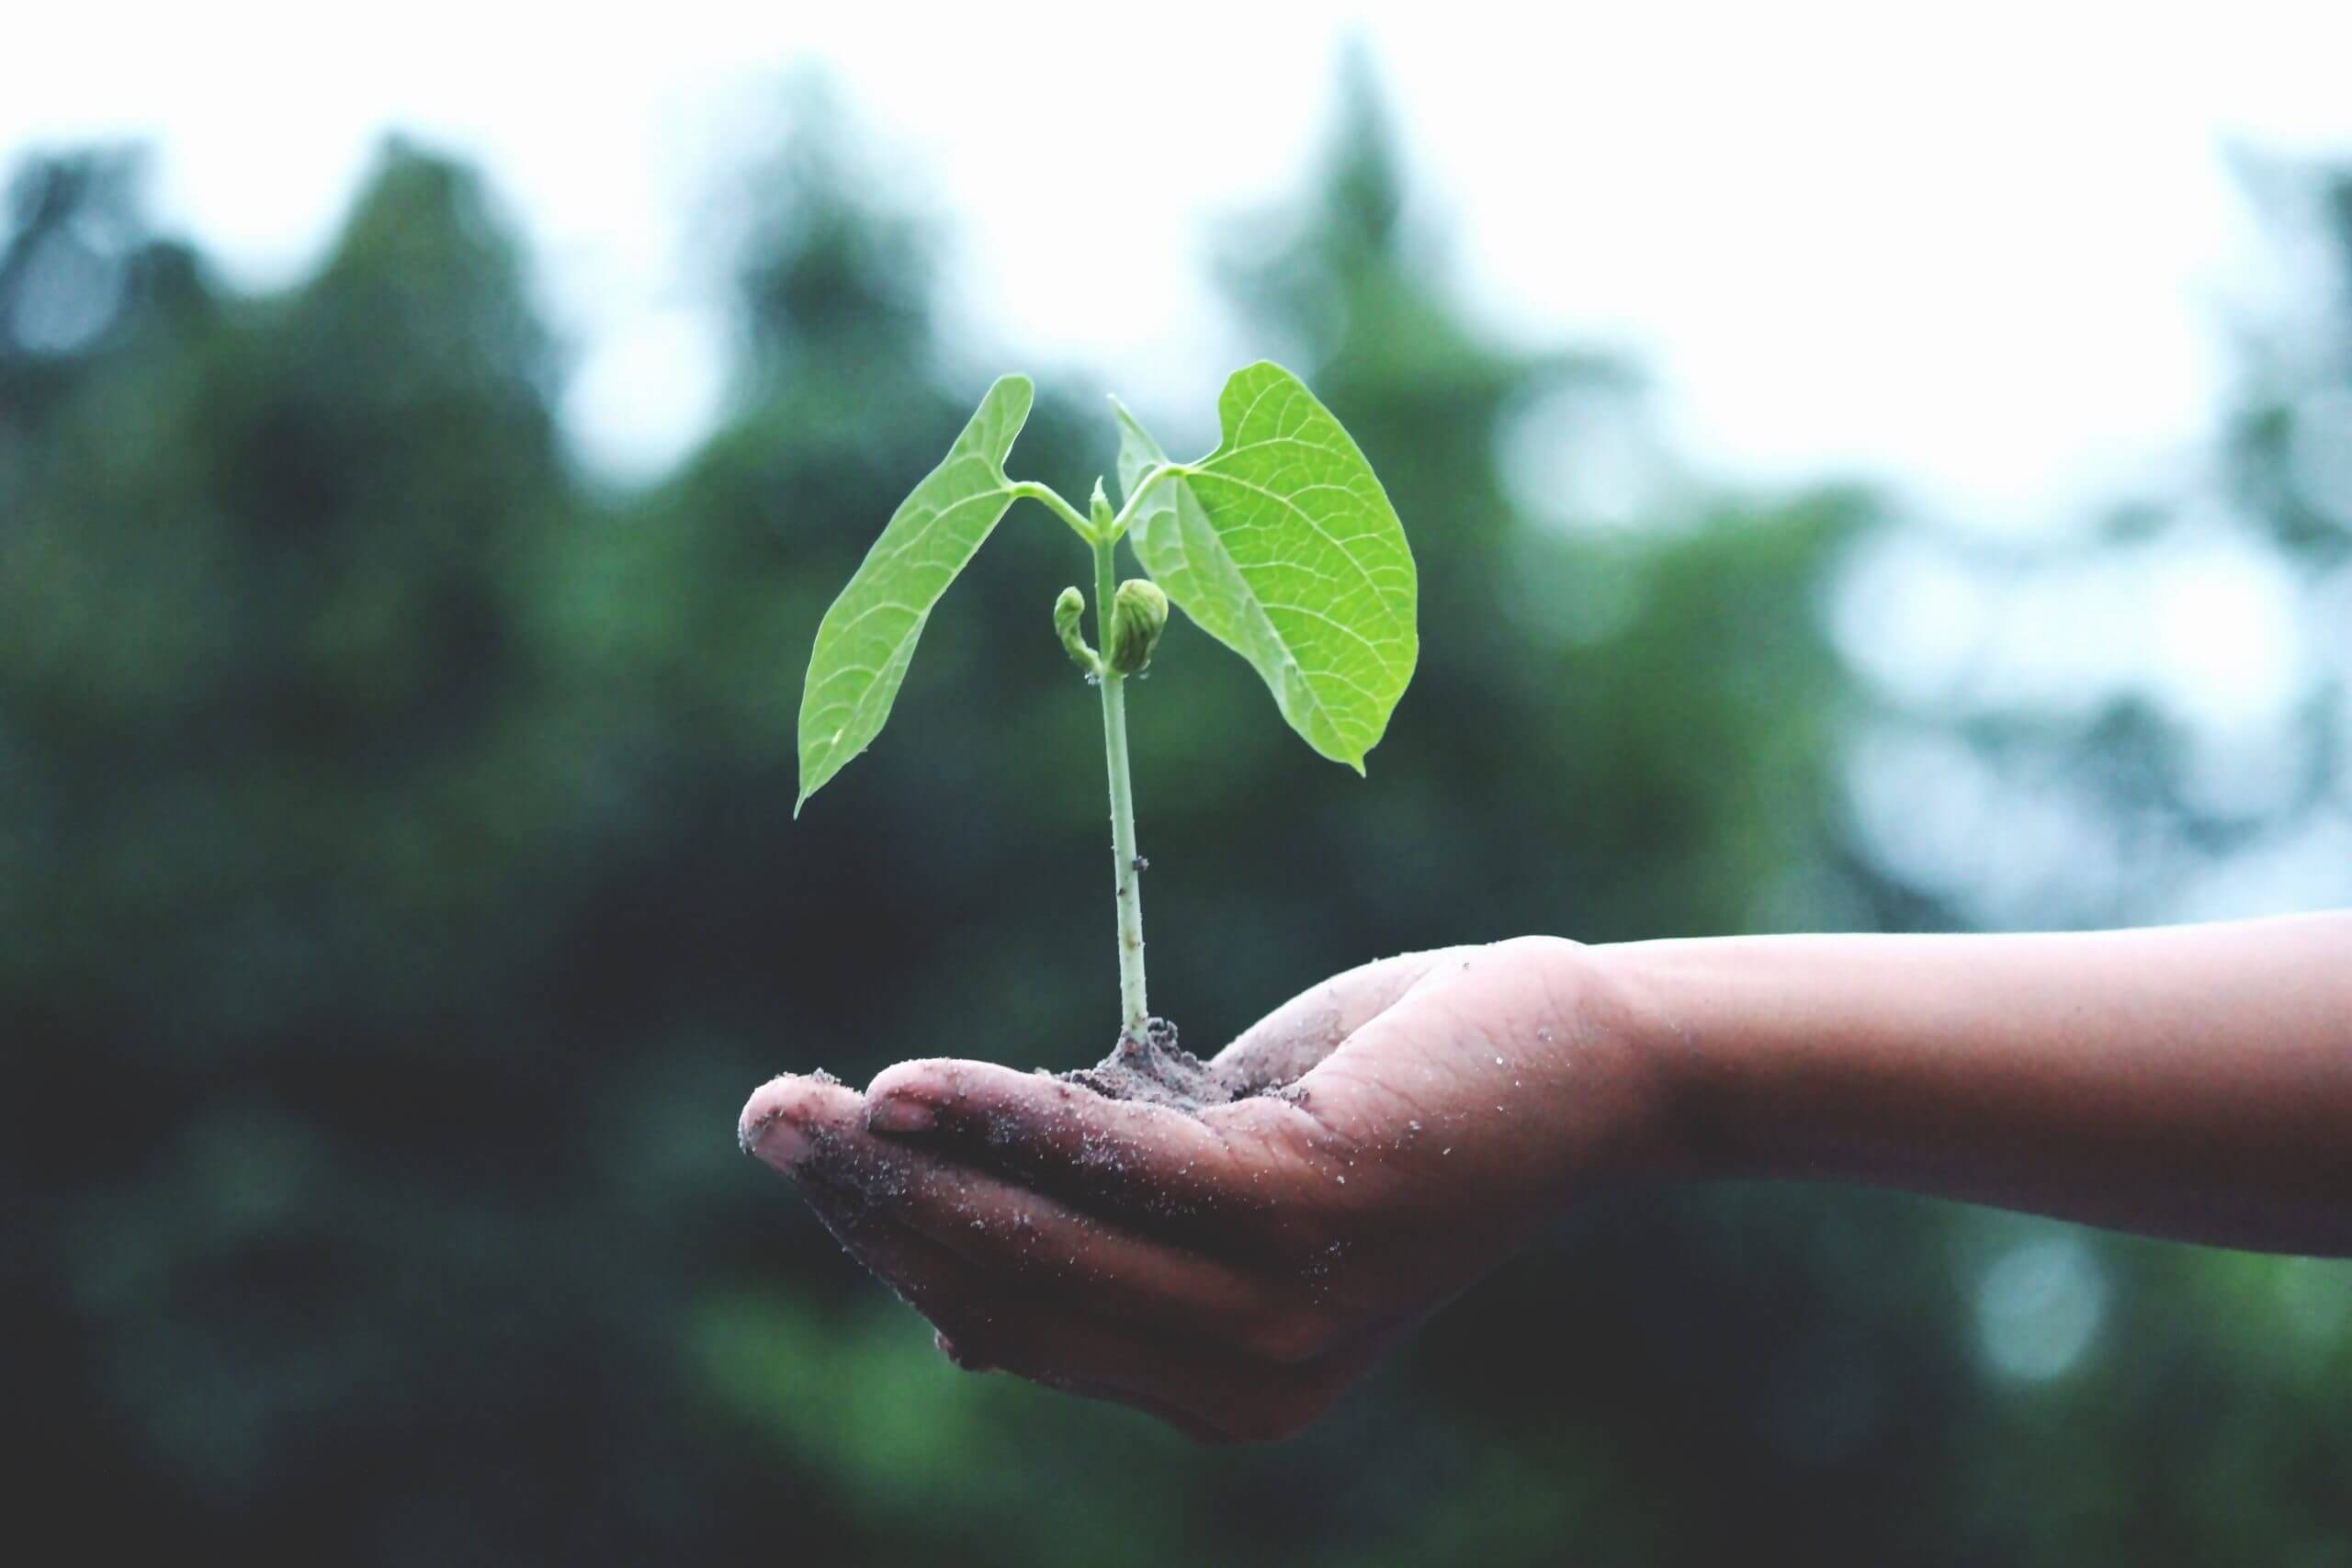 person-holding-a-green-plant